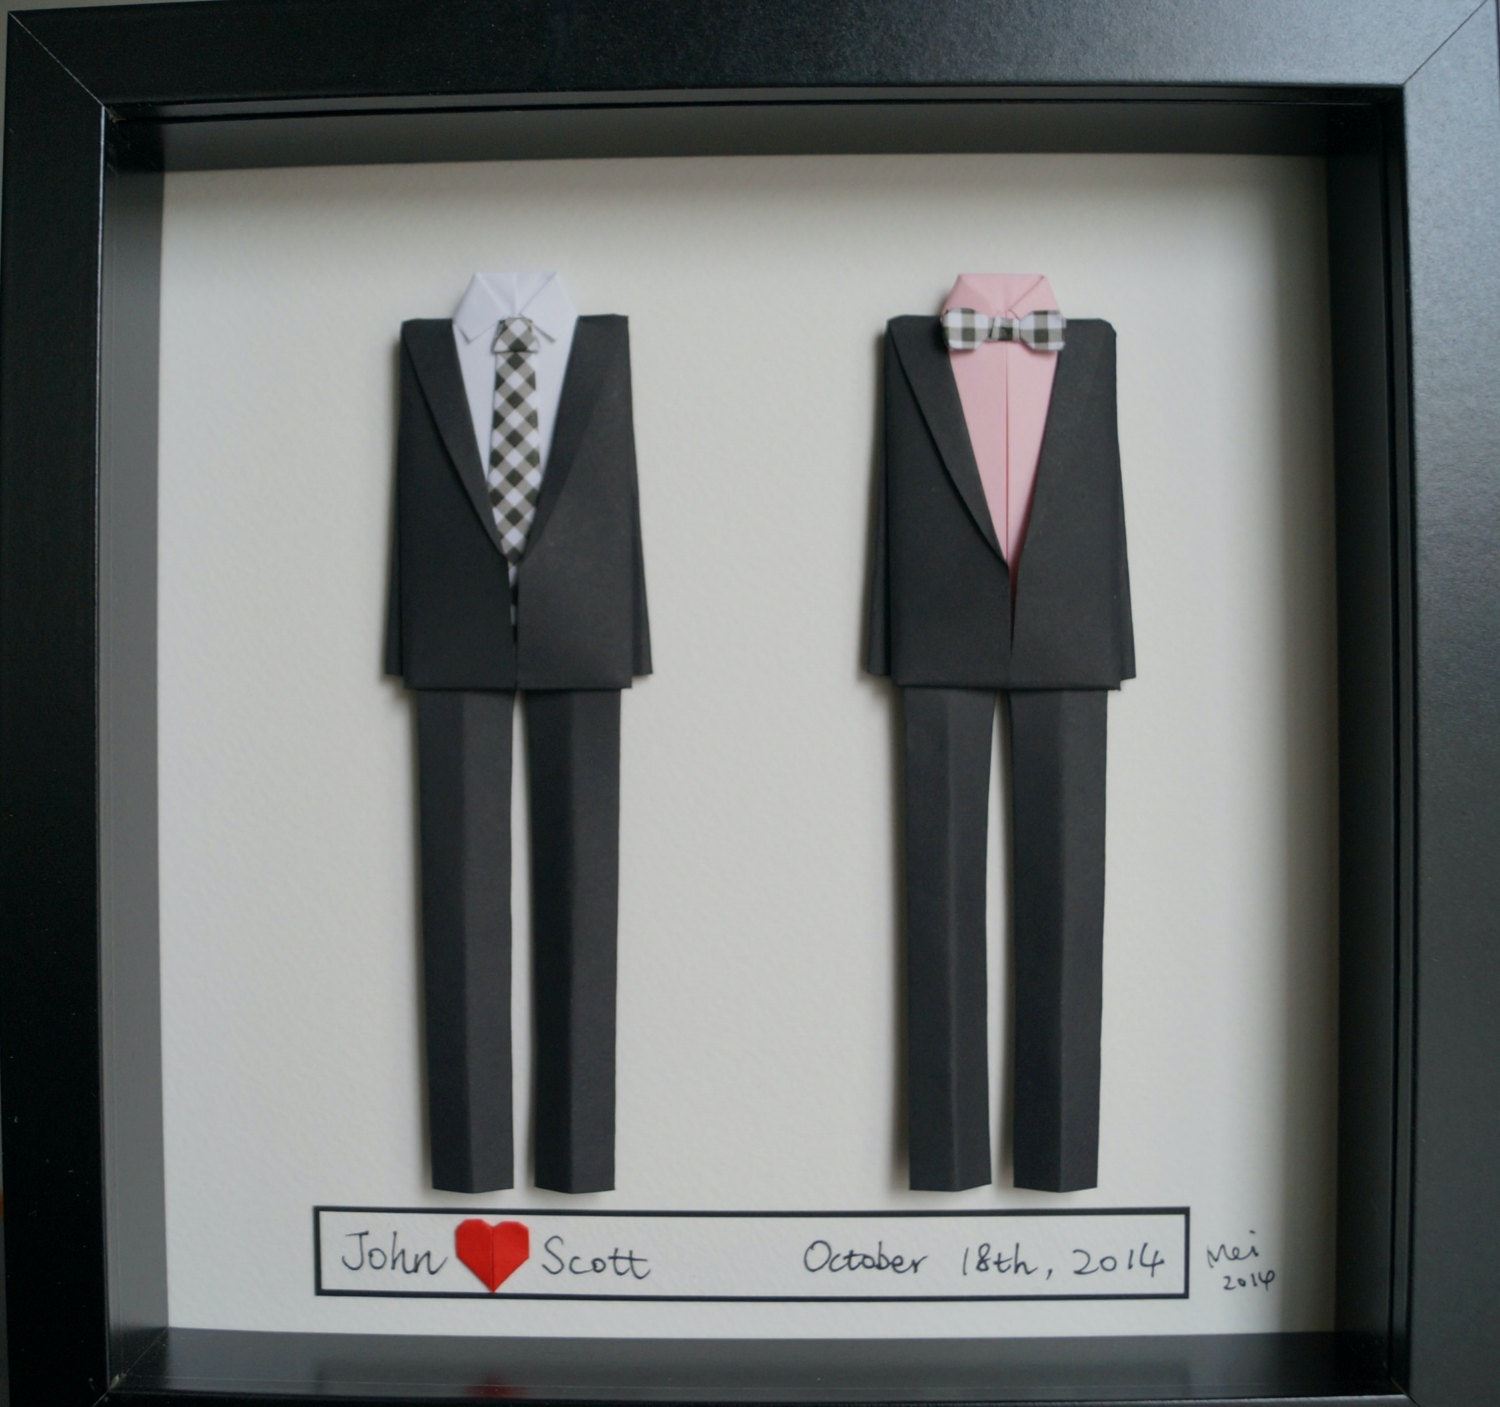 gay marriage wedding gifts. 11 gay marriage wedding gifts for same-sex couples that celebrate love in super sweet ways q